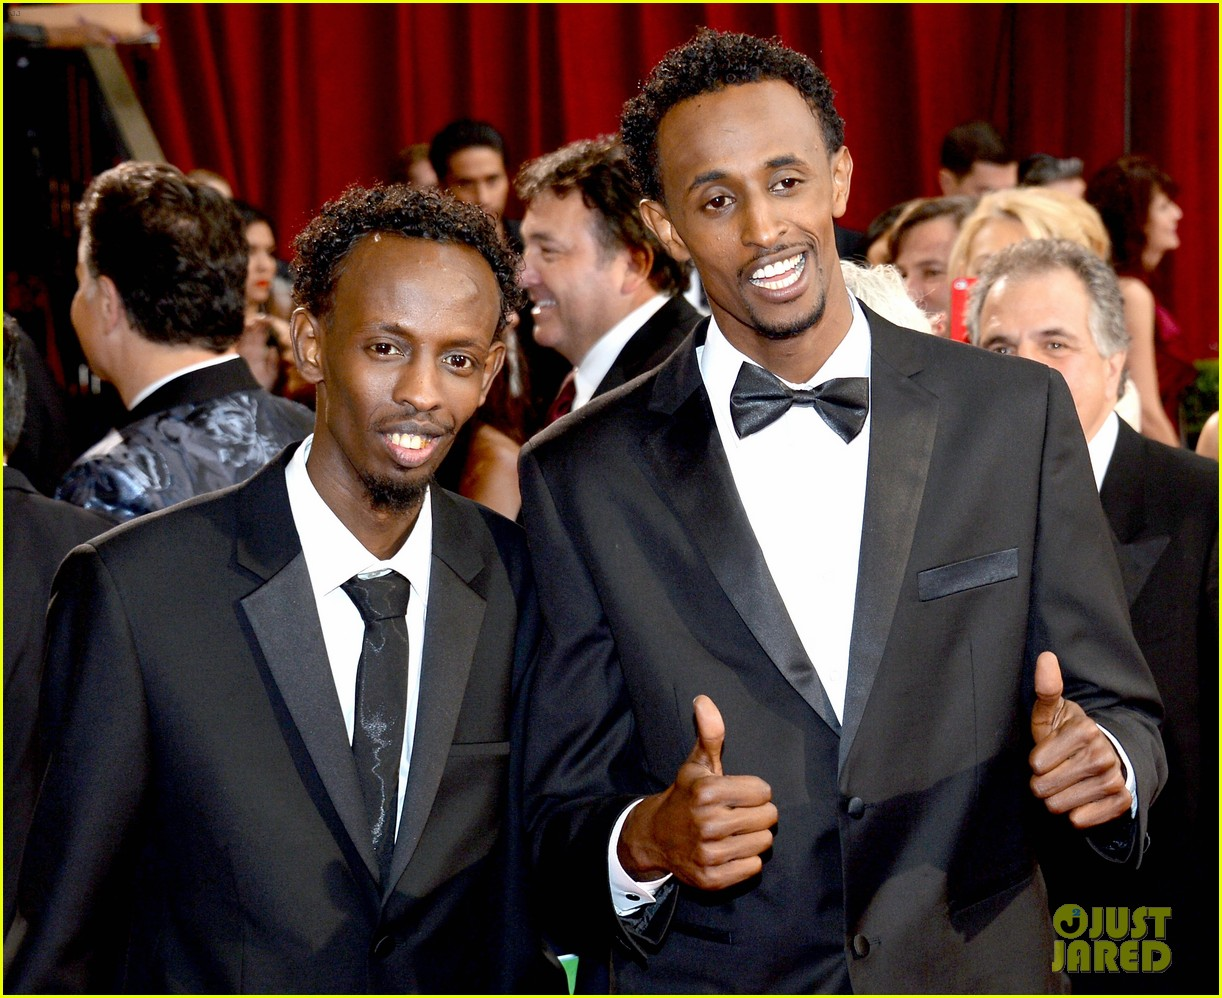 barkhad abdi is the captain now at oscars 2014 red carpet 053063935